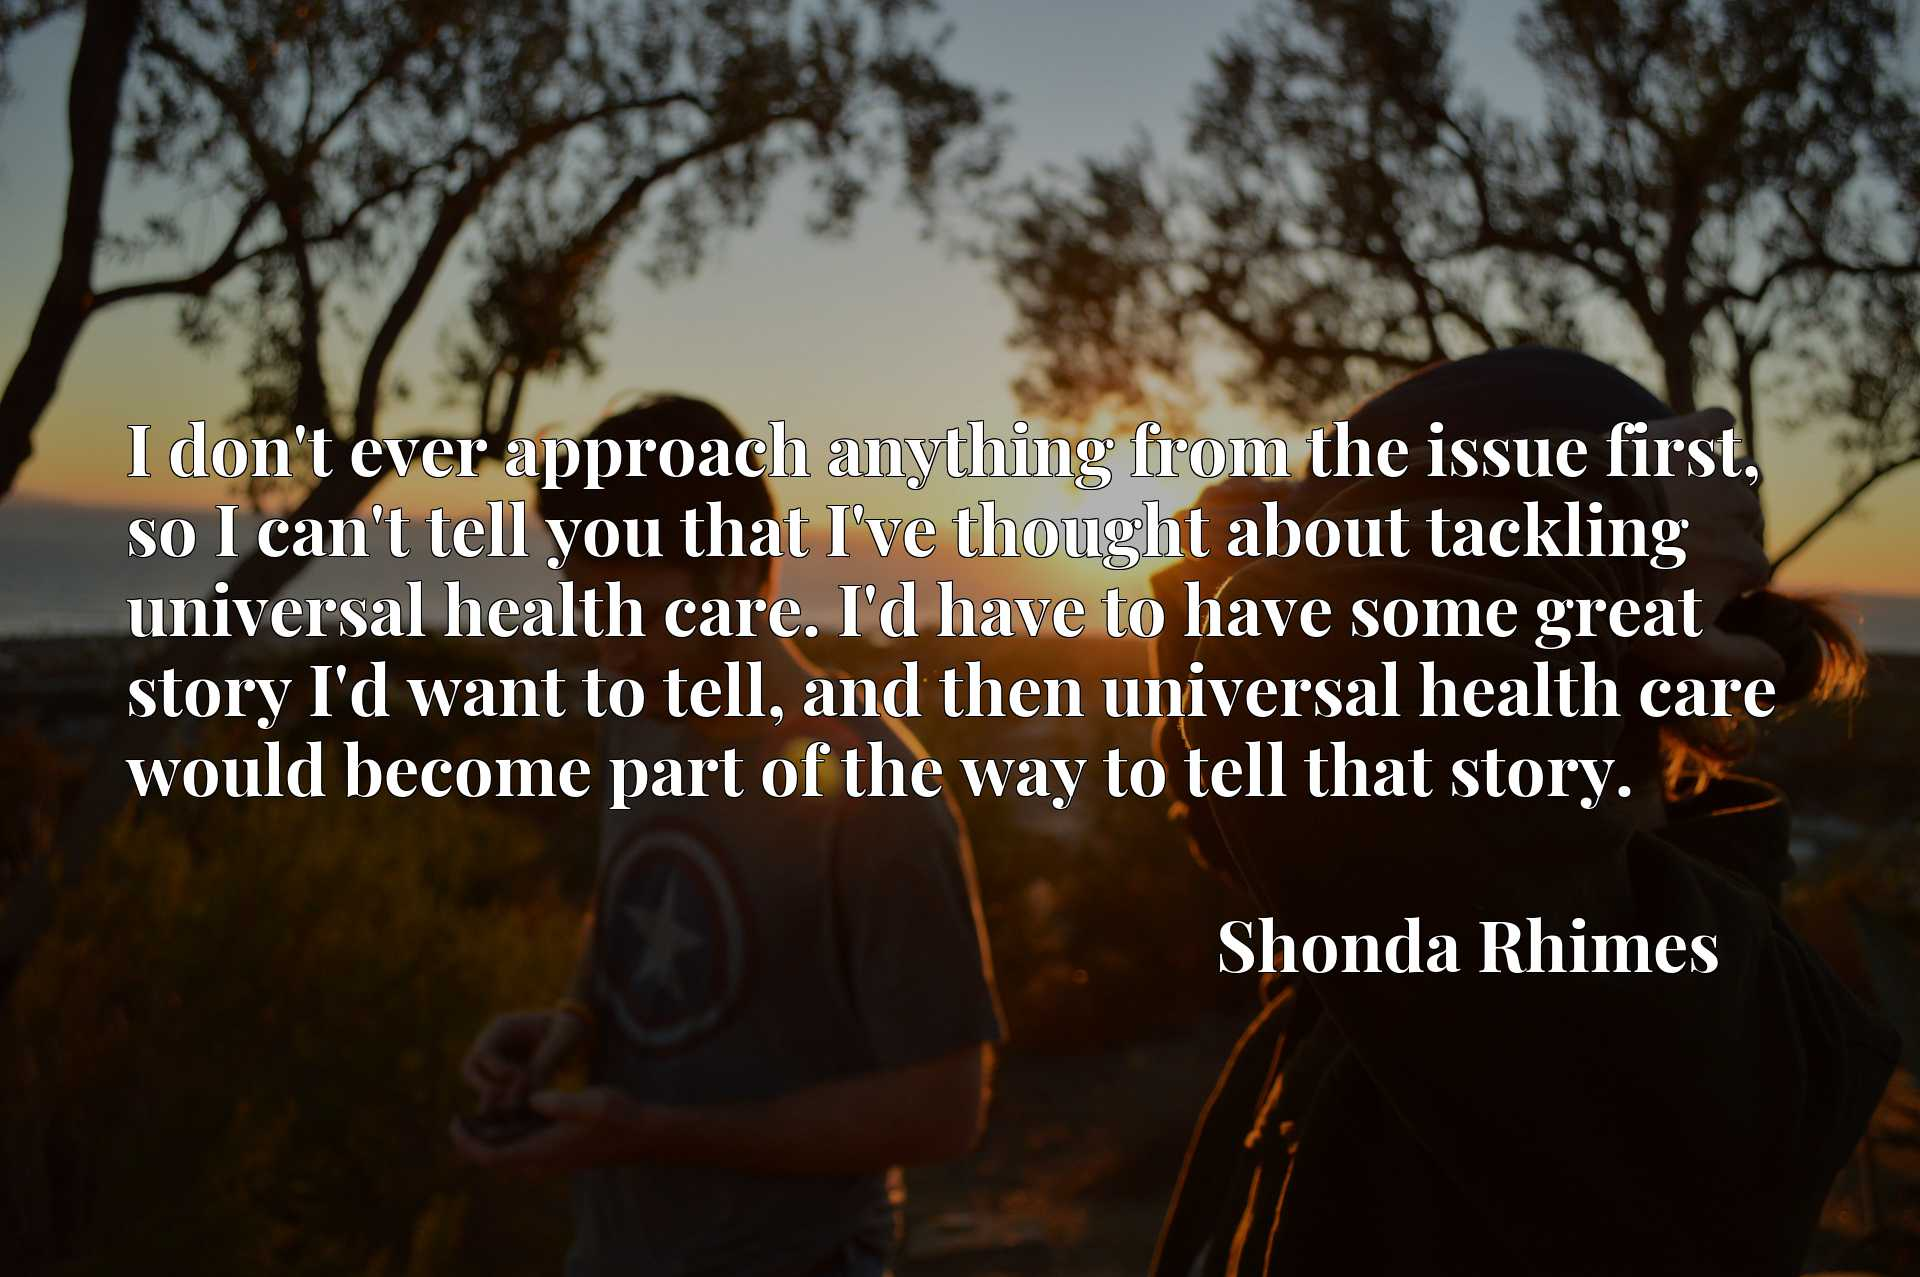 I don't ever approach anything from the issue first, so I can't tell you that I've thought about tackling universal health care. I'd have to have some great story I'd want to tell, and then universal health care would become part of the way to tell that story.